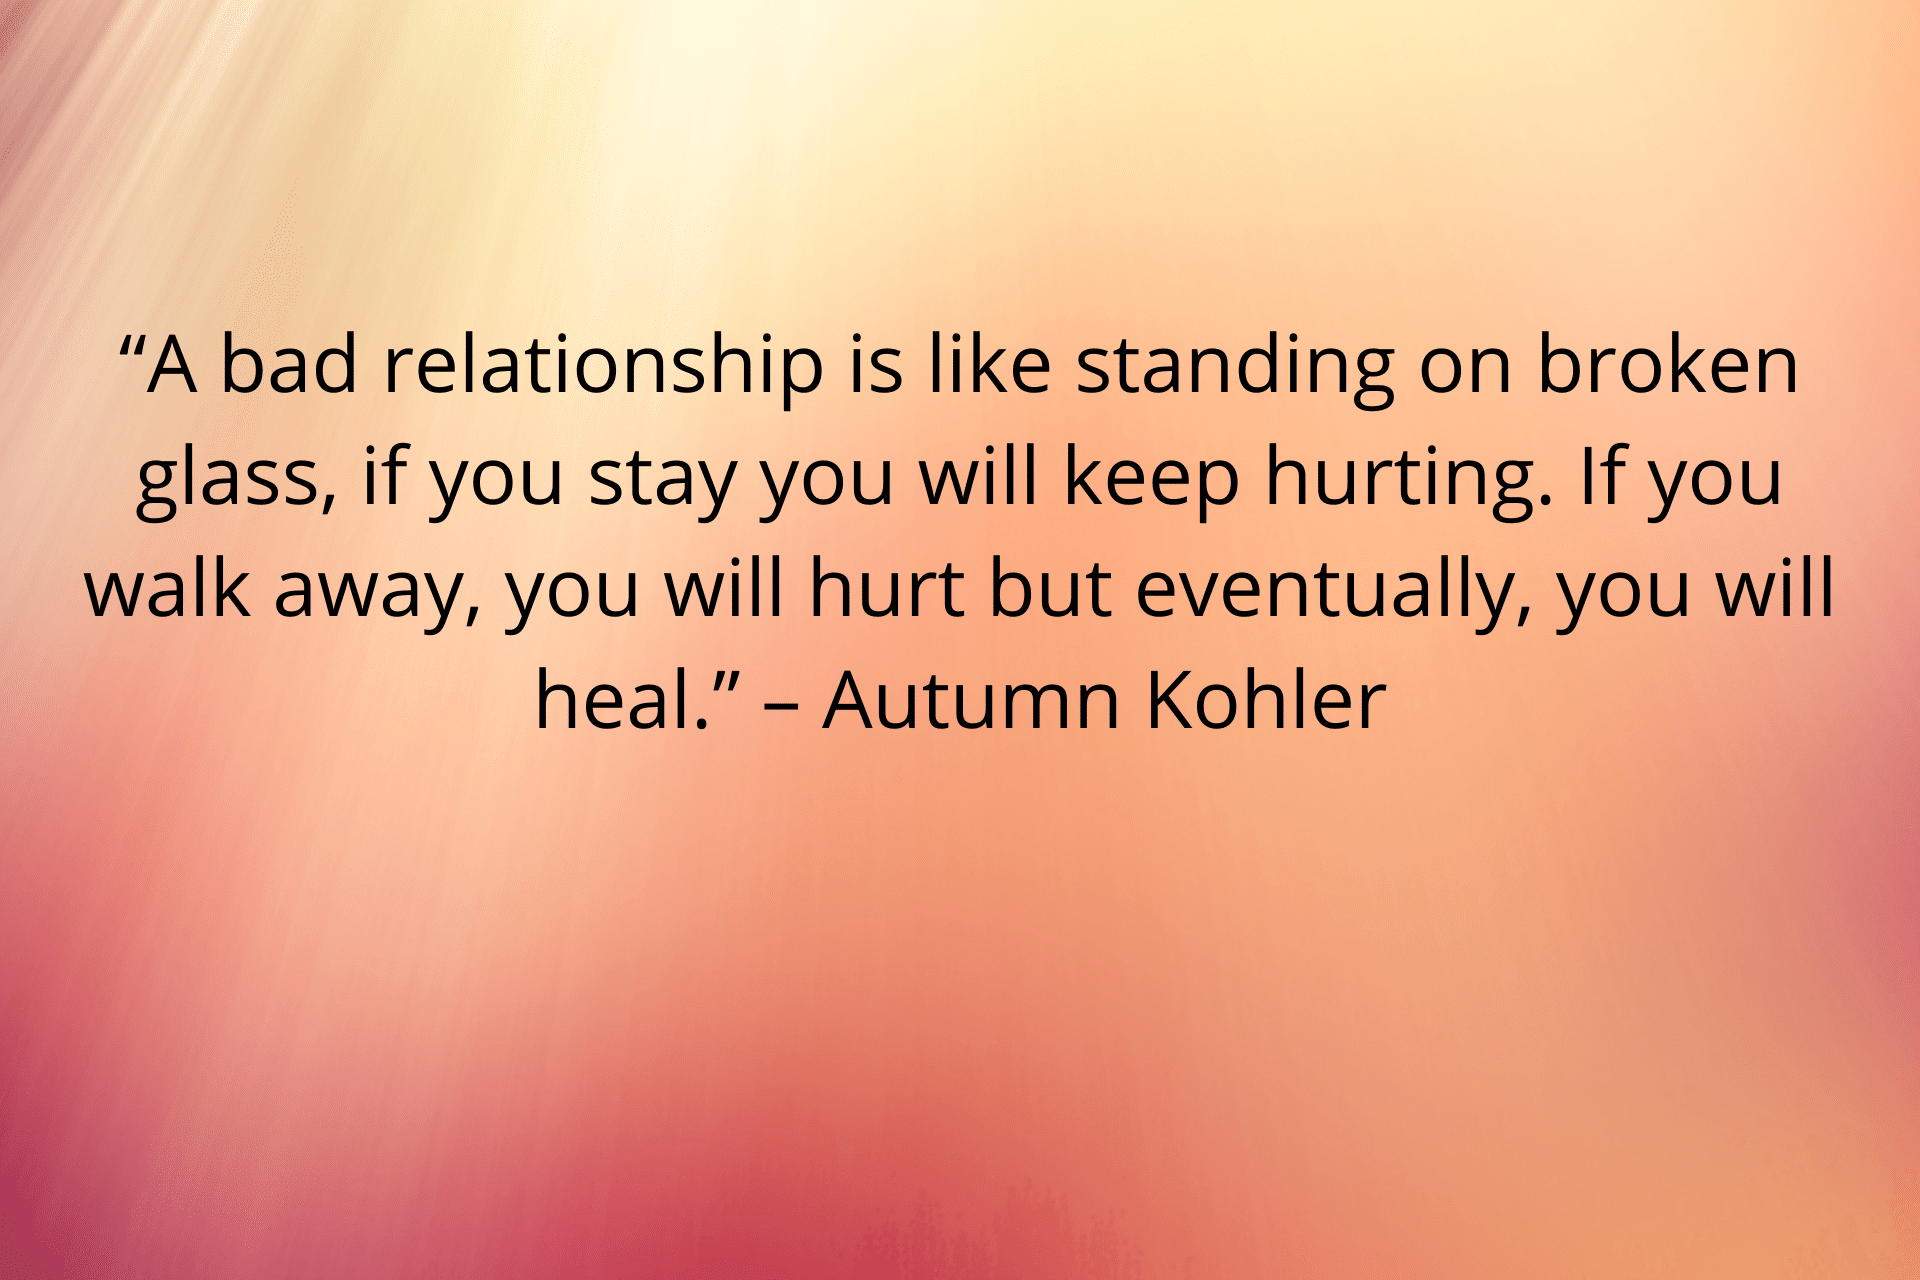 photo with an orang, red, and yellow tone with an unhealthy relationship quote